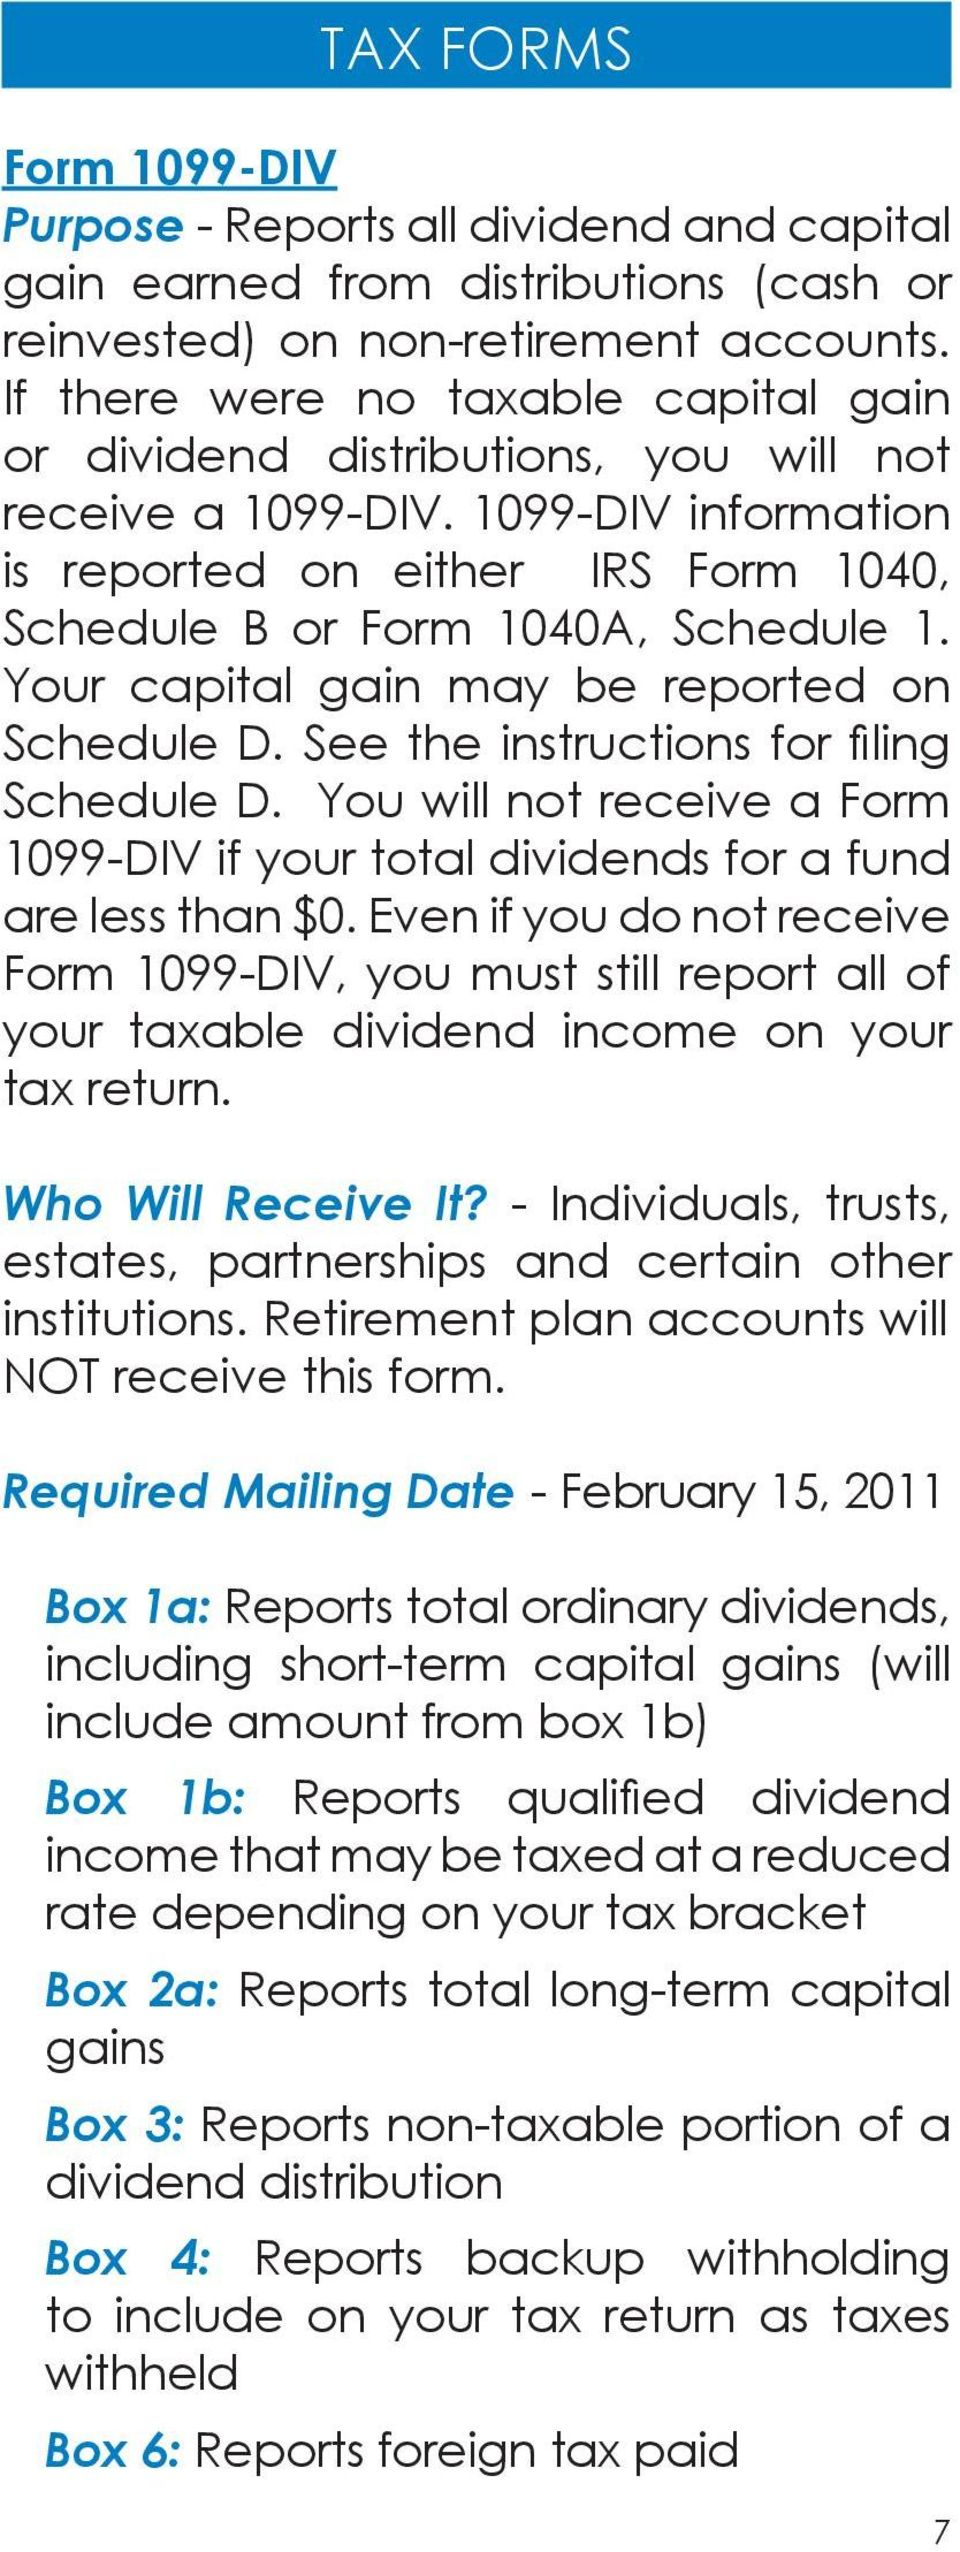 Your capital gain may be reported on Schedule D. See the instructions for filing Schedule D. You will not receive a Form 1099-DIV if your total dividends for a fund are less than $0.